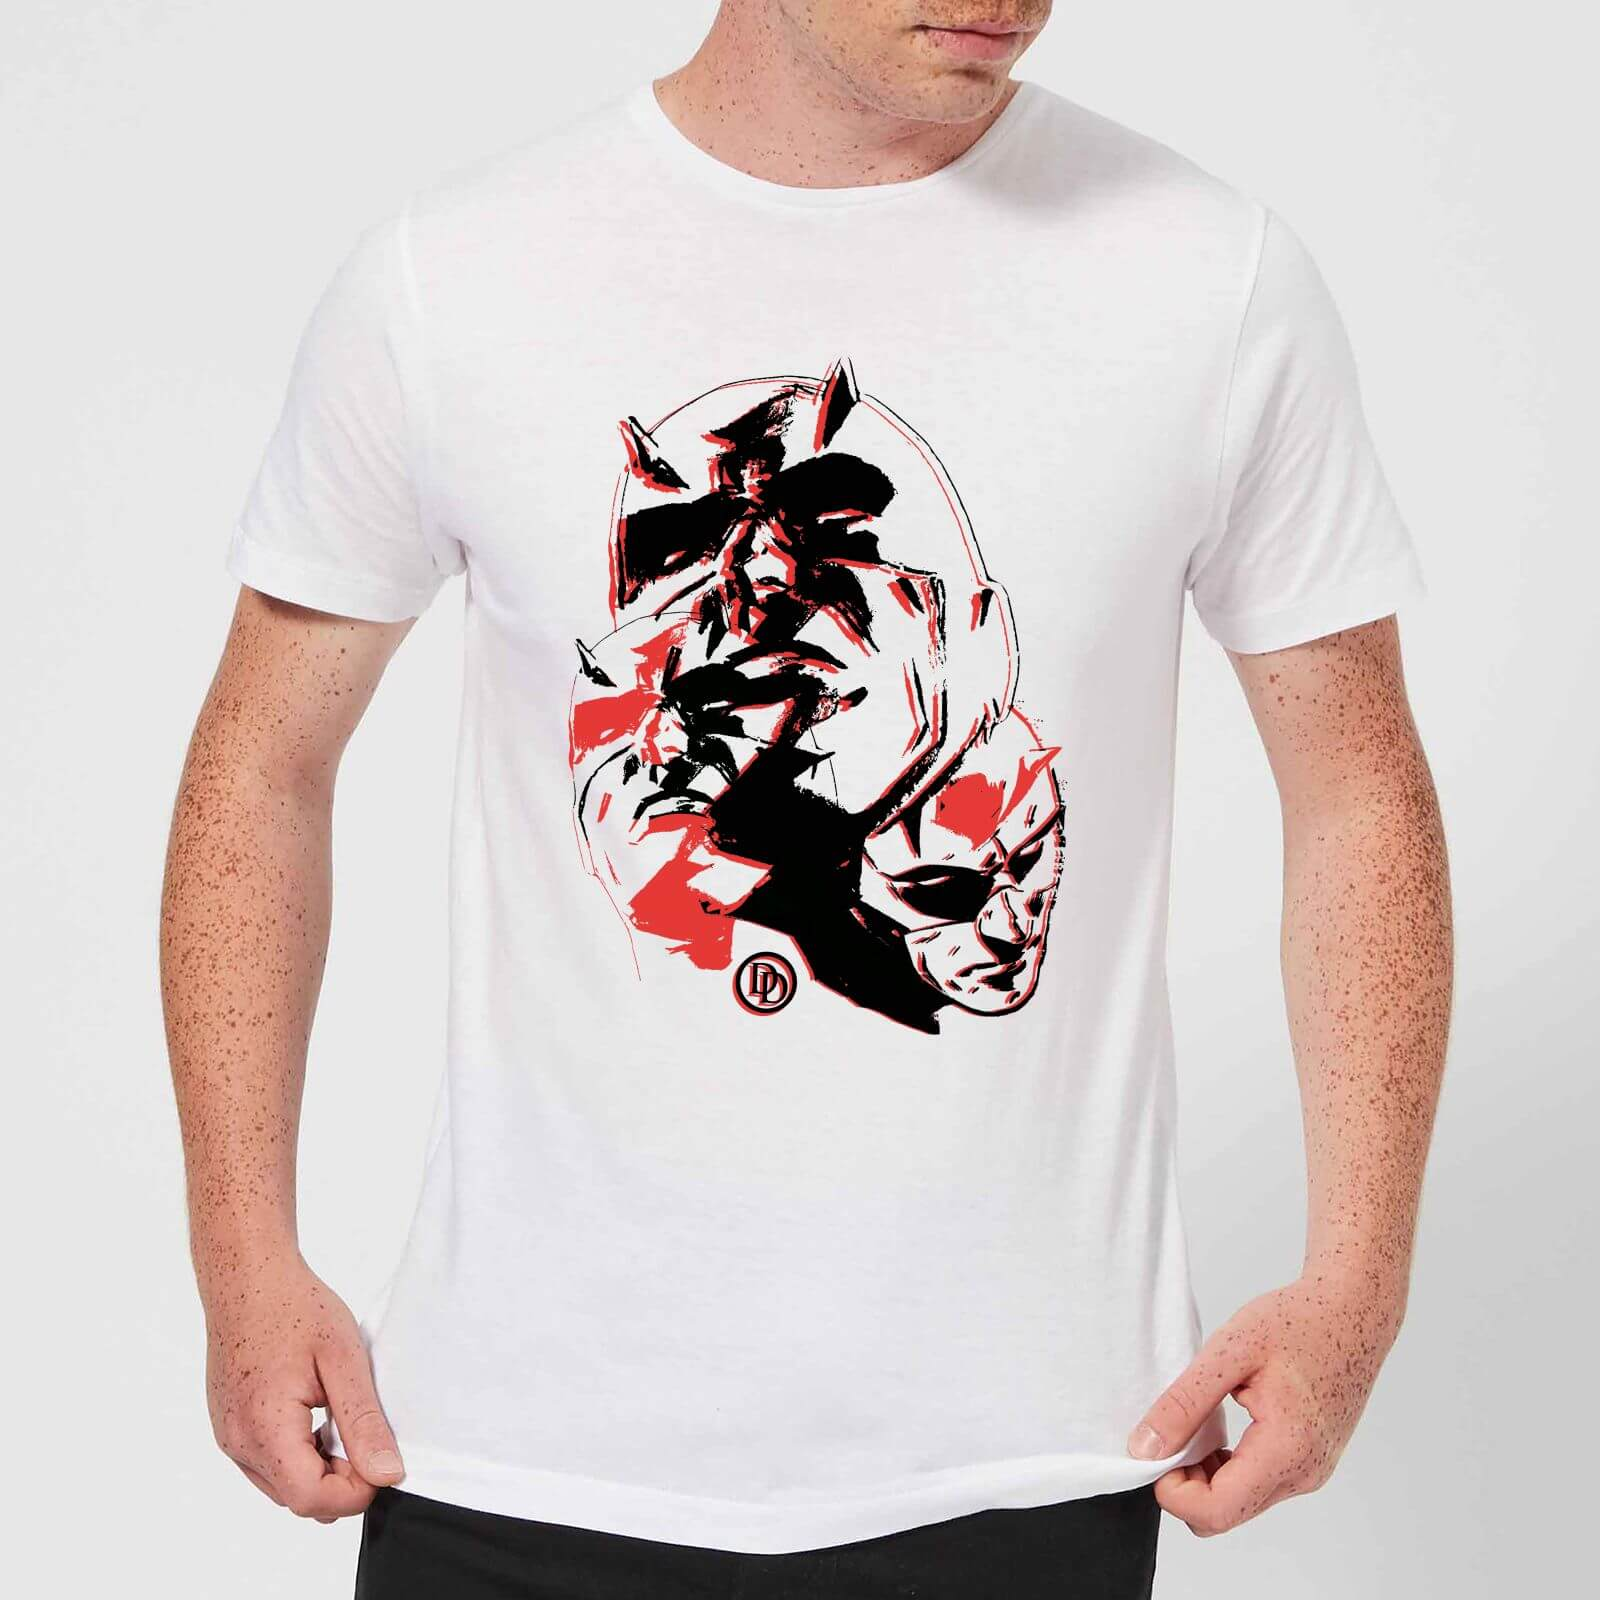 OfferteWeb.click 13-t-shirt-marvel-knights-daredevil-layered-faces-bianco